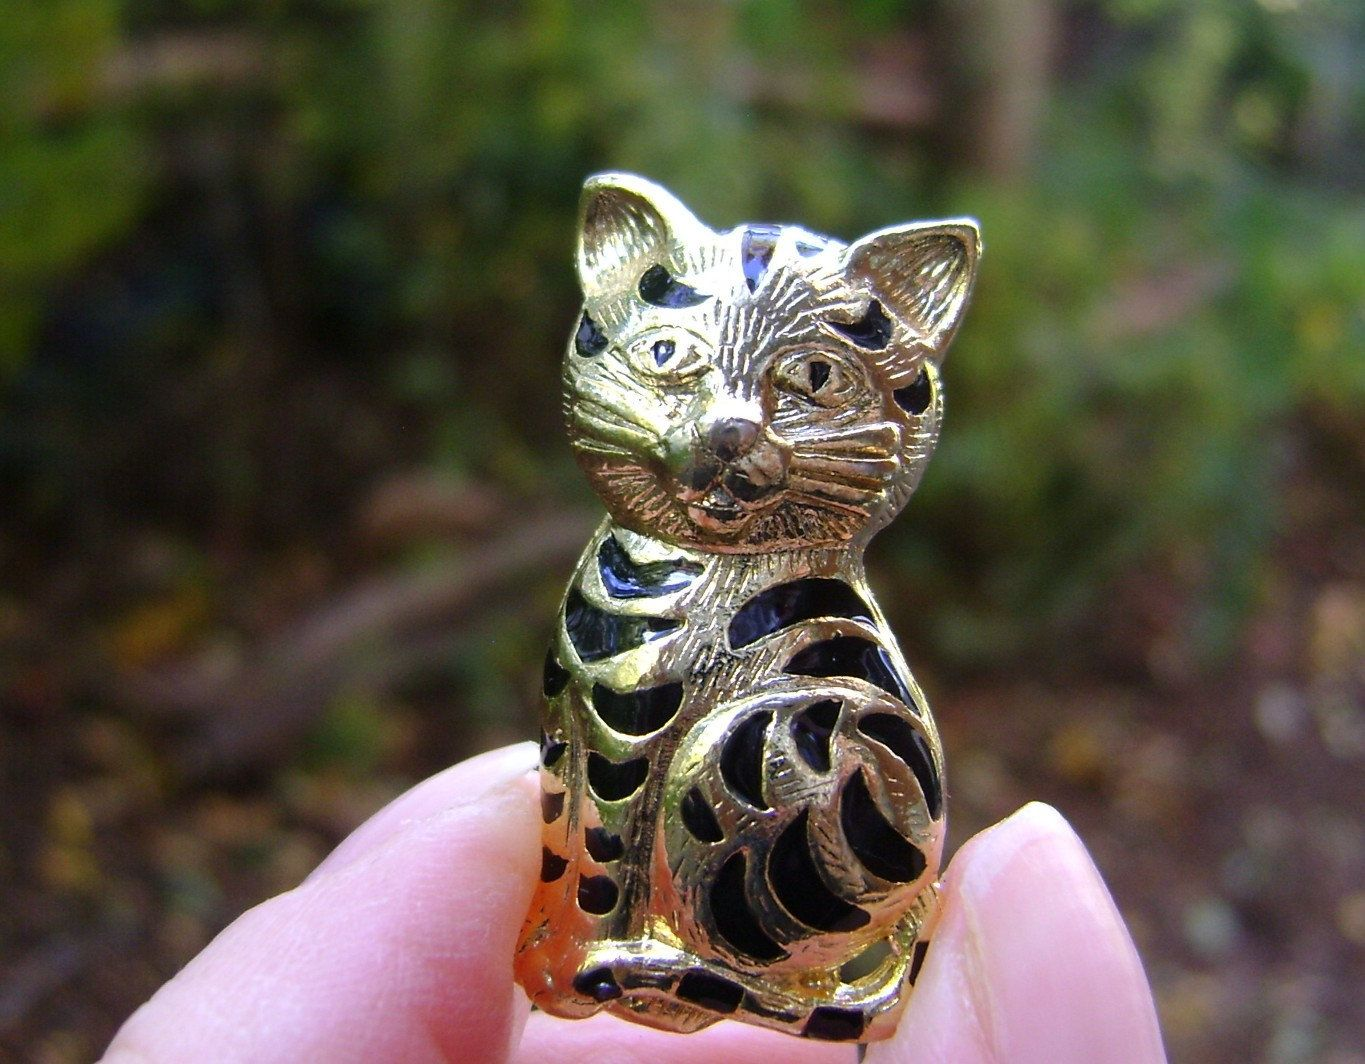 Tiger Vintage Brooch Striped Cat Wild Cat Retro Pin Jewelry Christmas Charm Kitten Cat Lovers Feline Birthday Gifts With Images Tiger Striped Cat Striped Cat Cats And Kittens